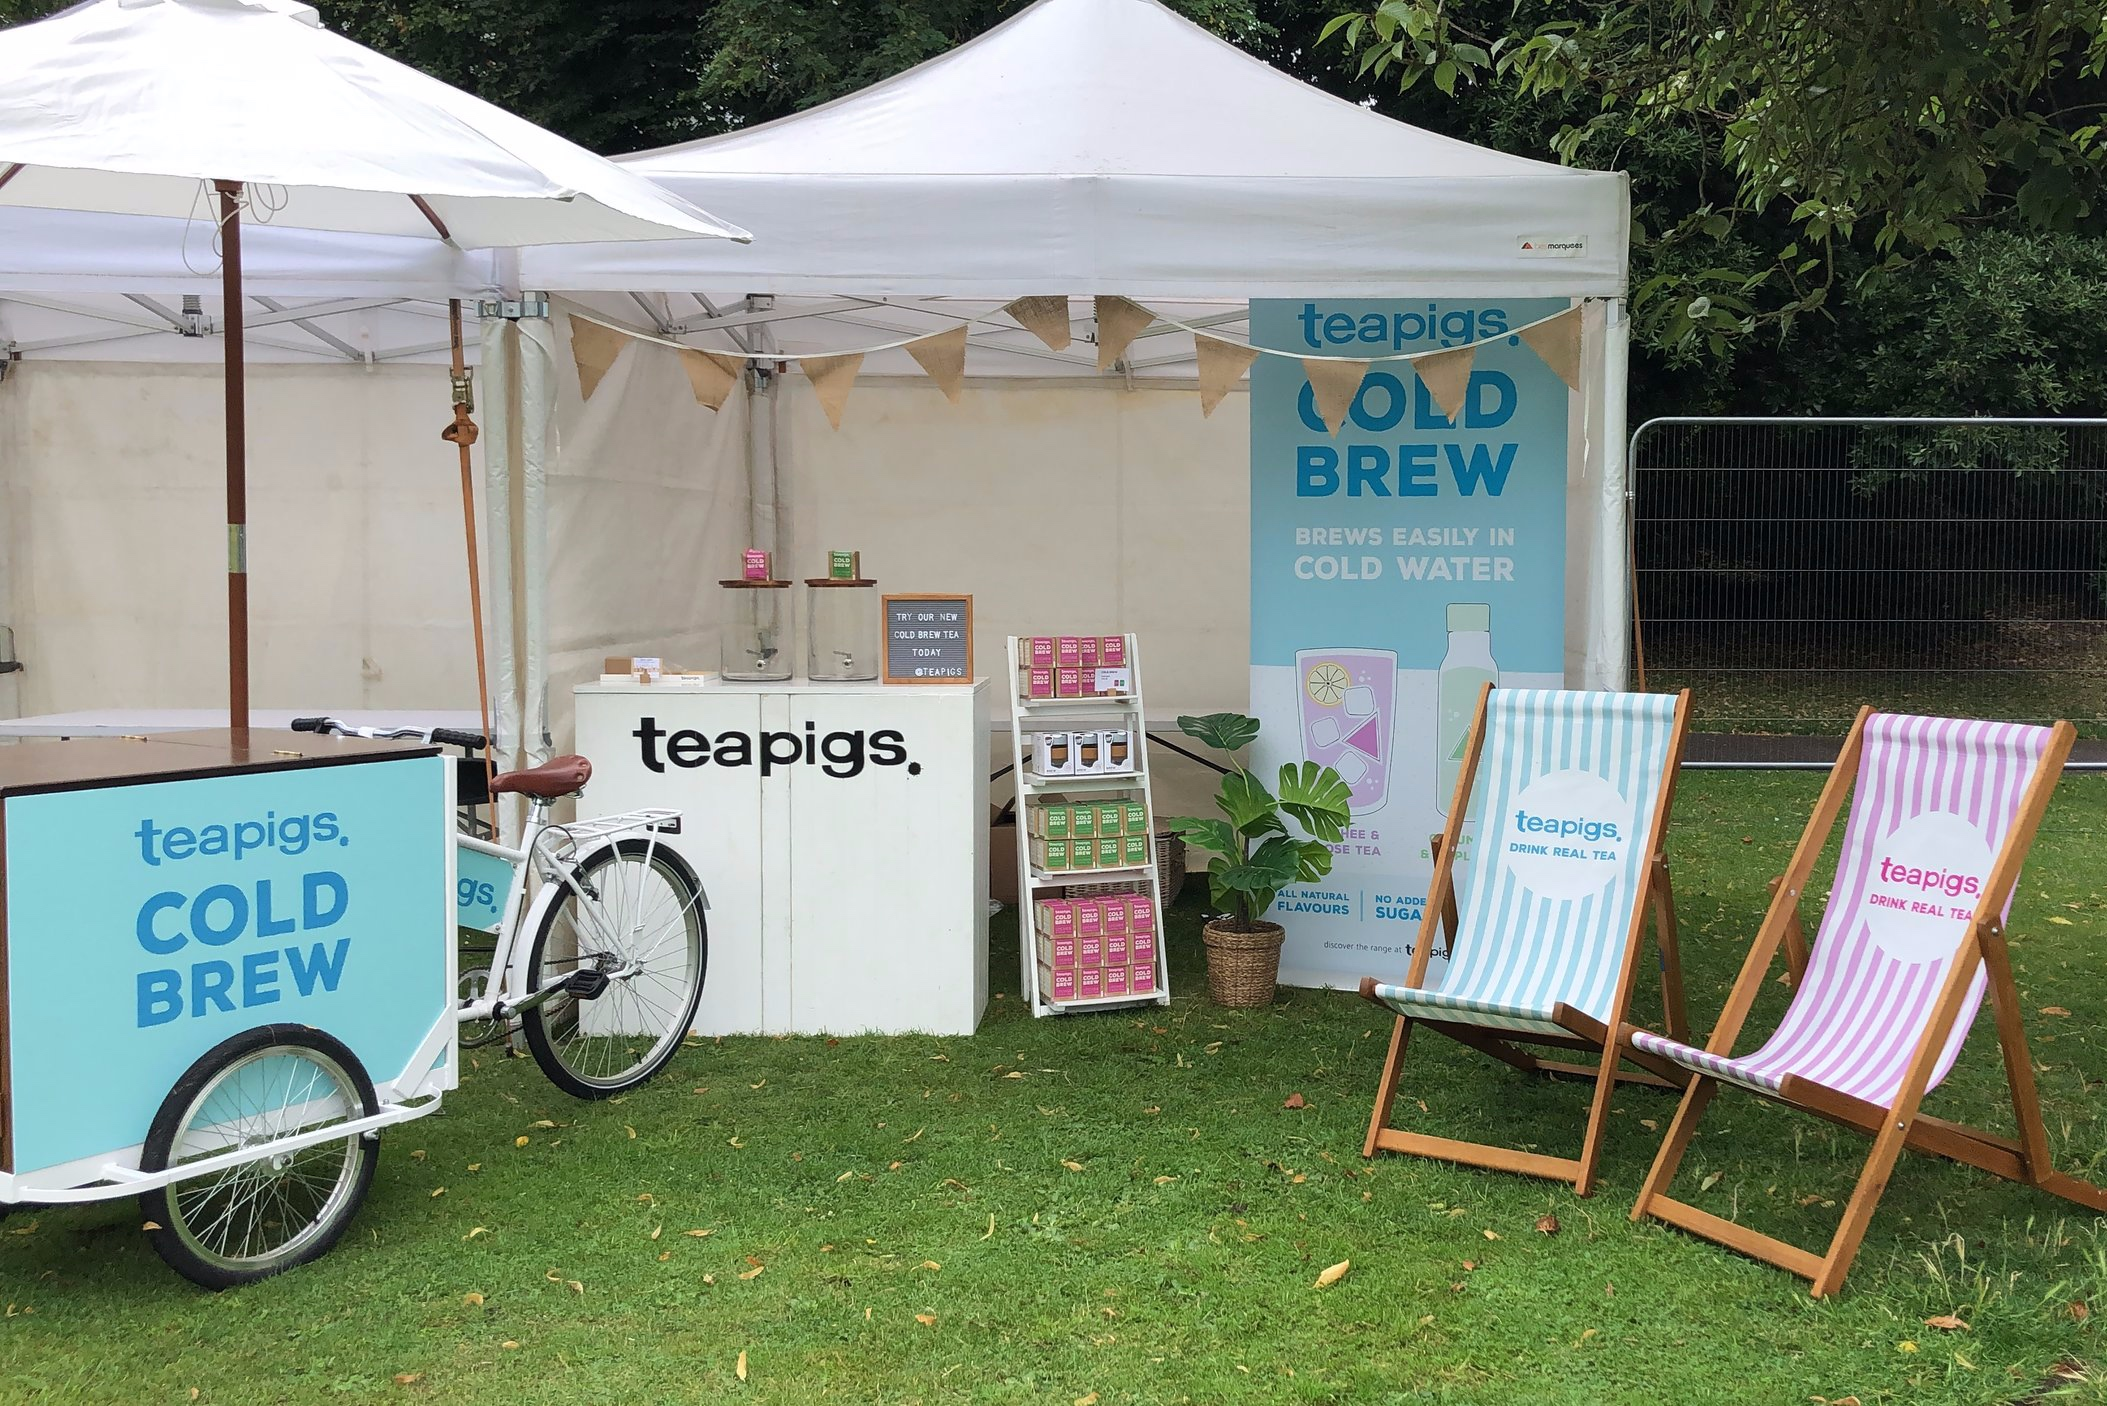 teapigs at Wanderlust Festival - Quirky Group Tricycle and Bar Unit